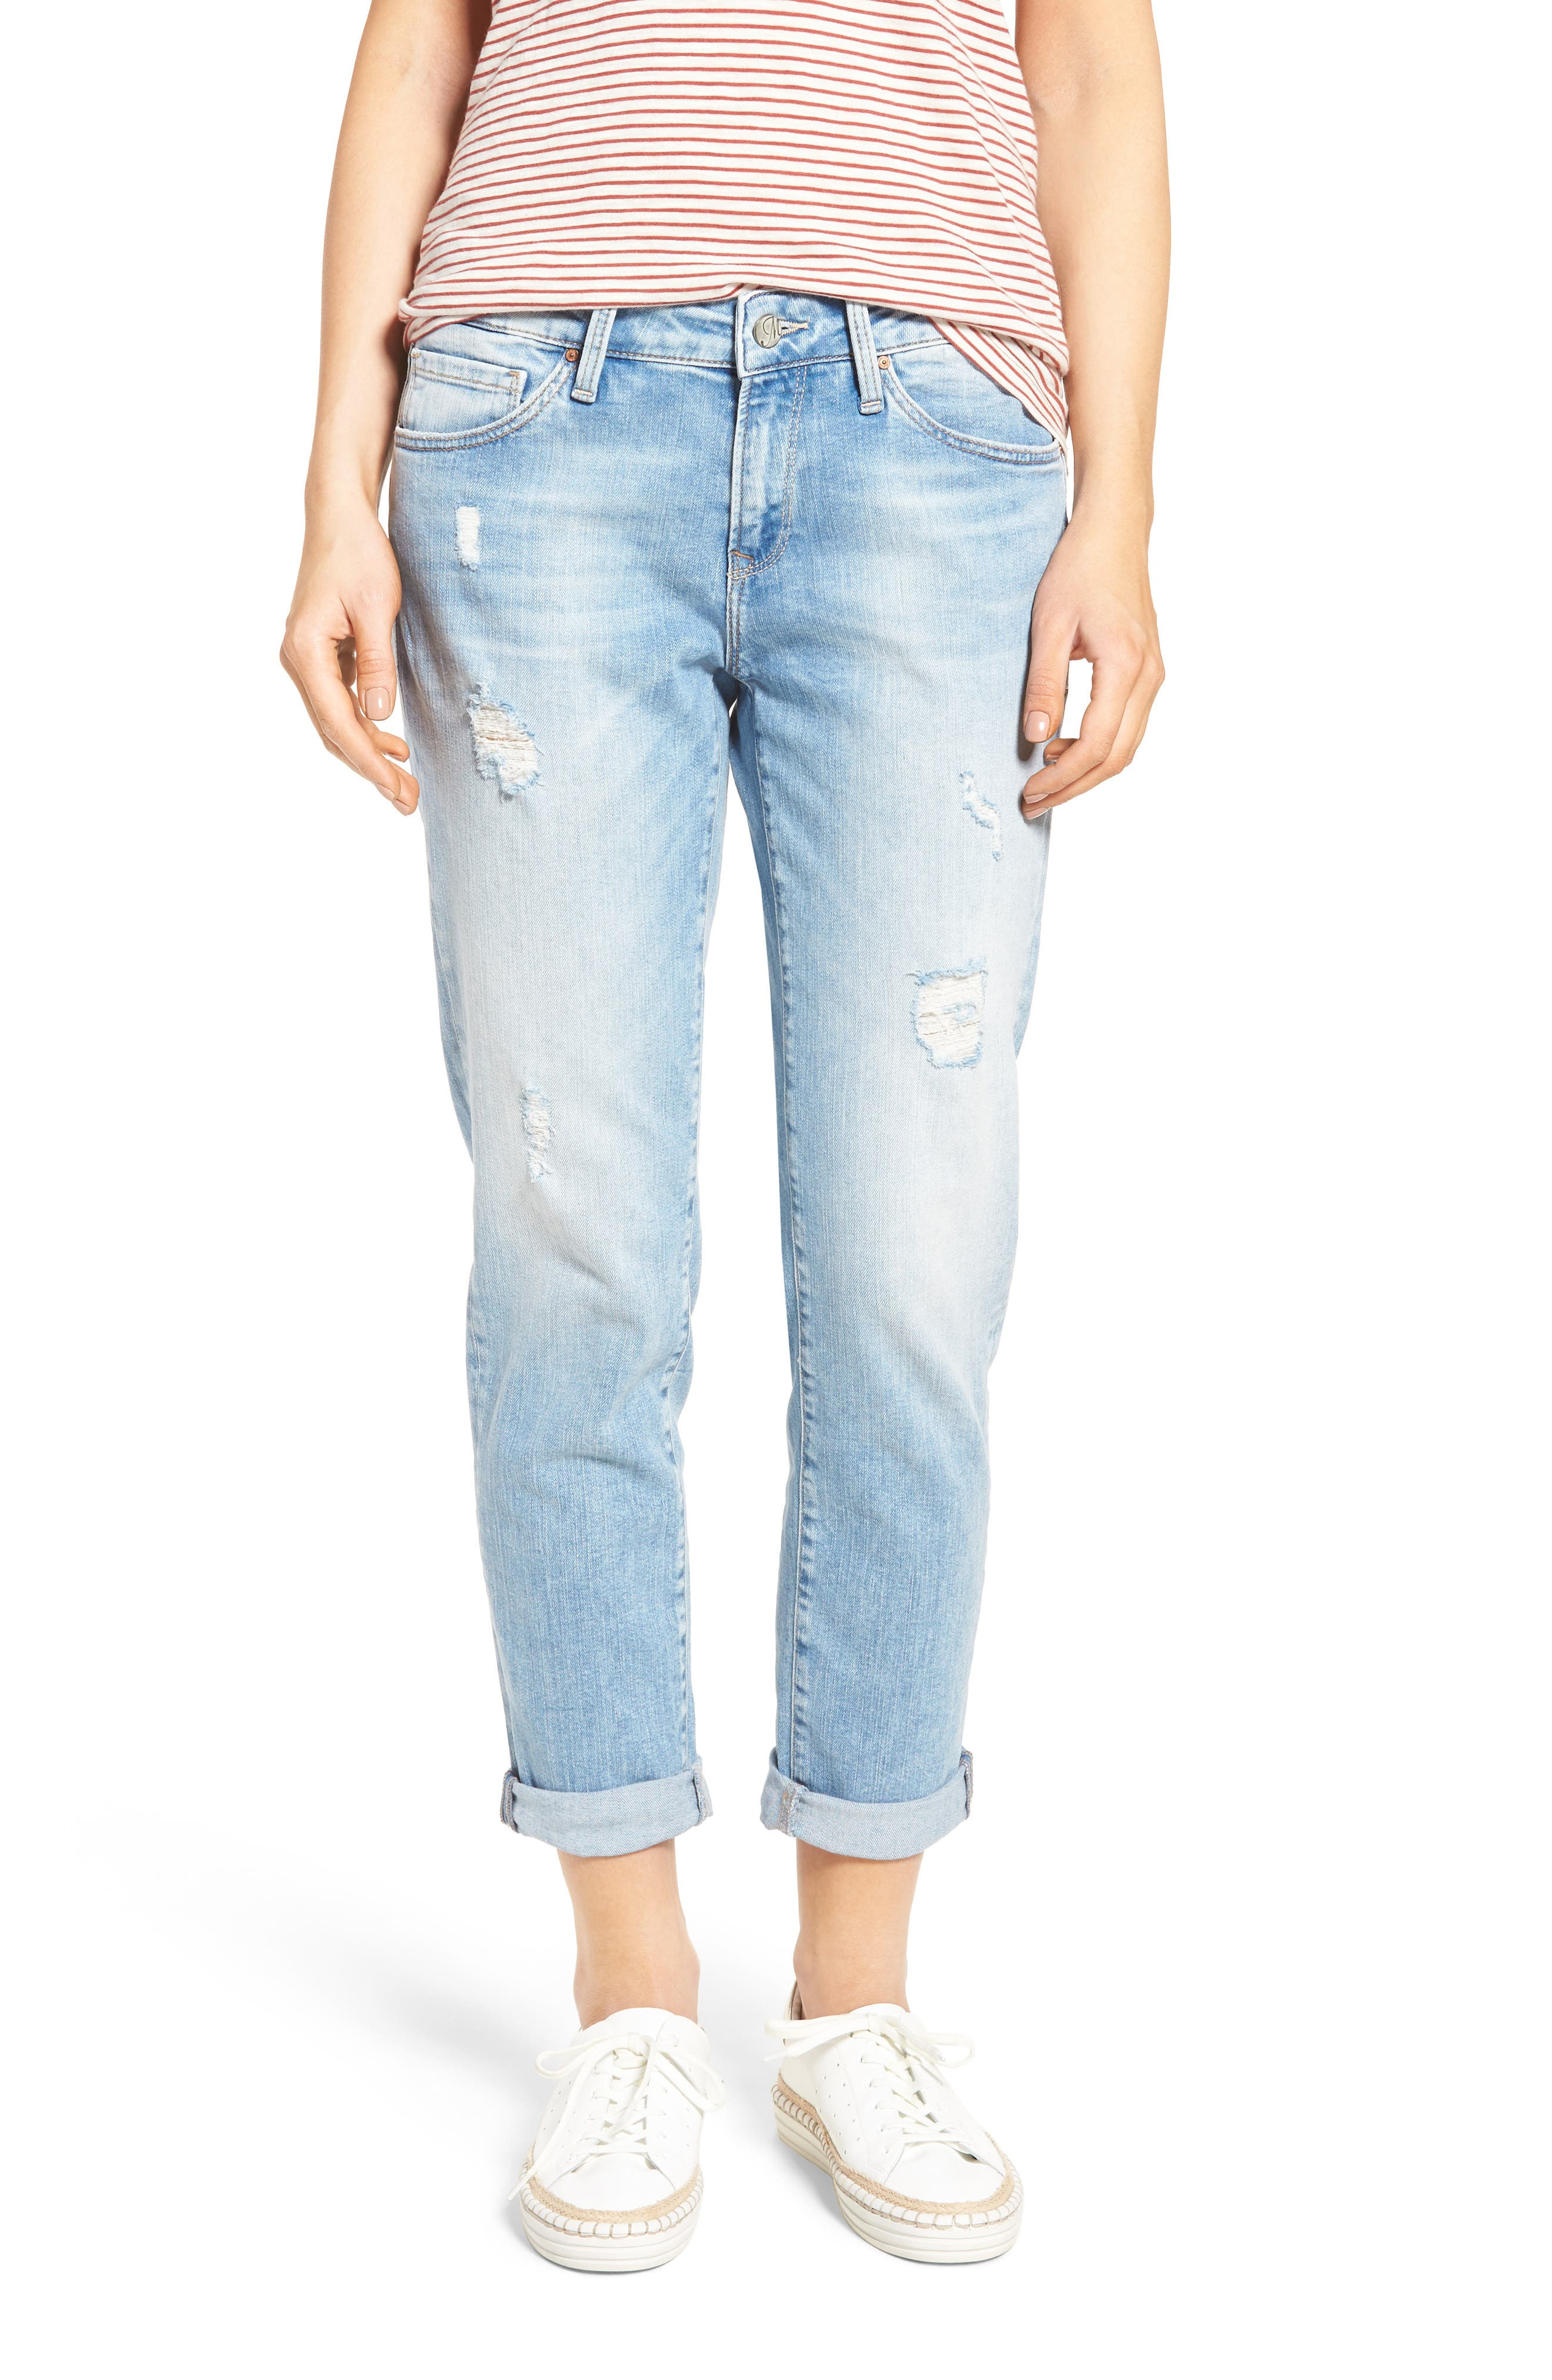 Main Image - Mavi Jeans Ada Ripped Boyfriend Jeans (Crashed Vintage)